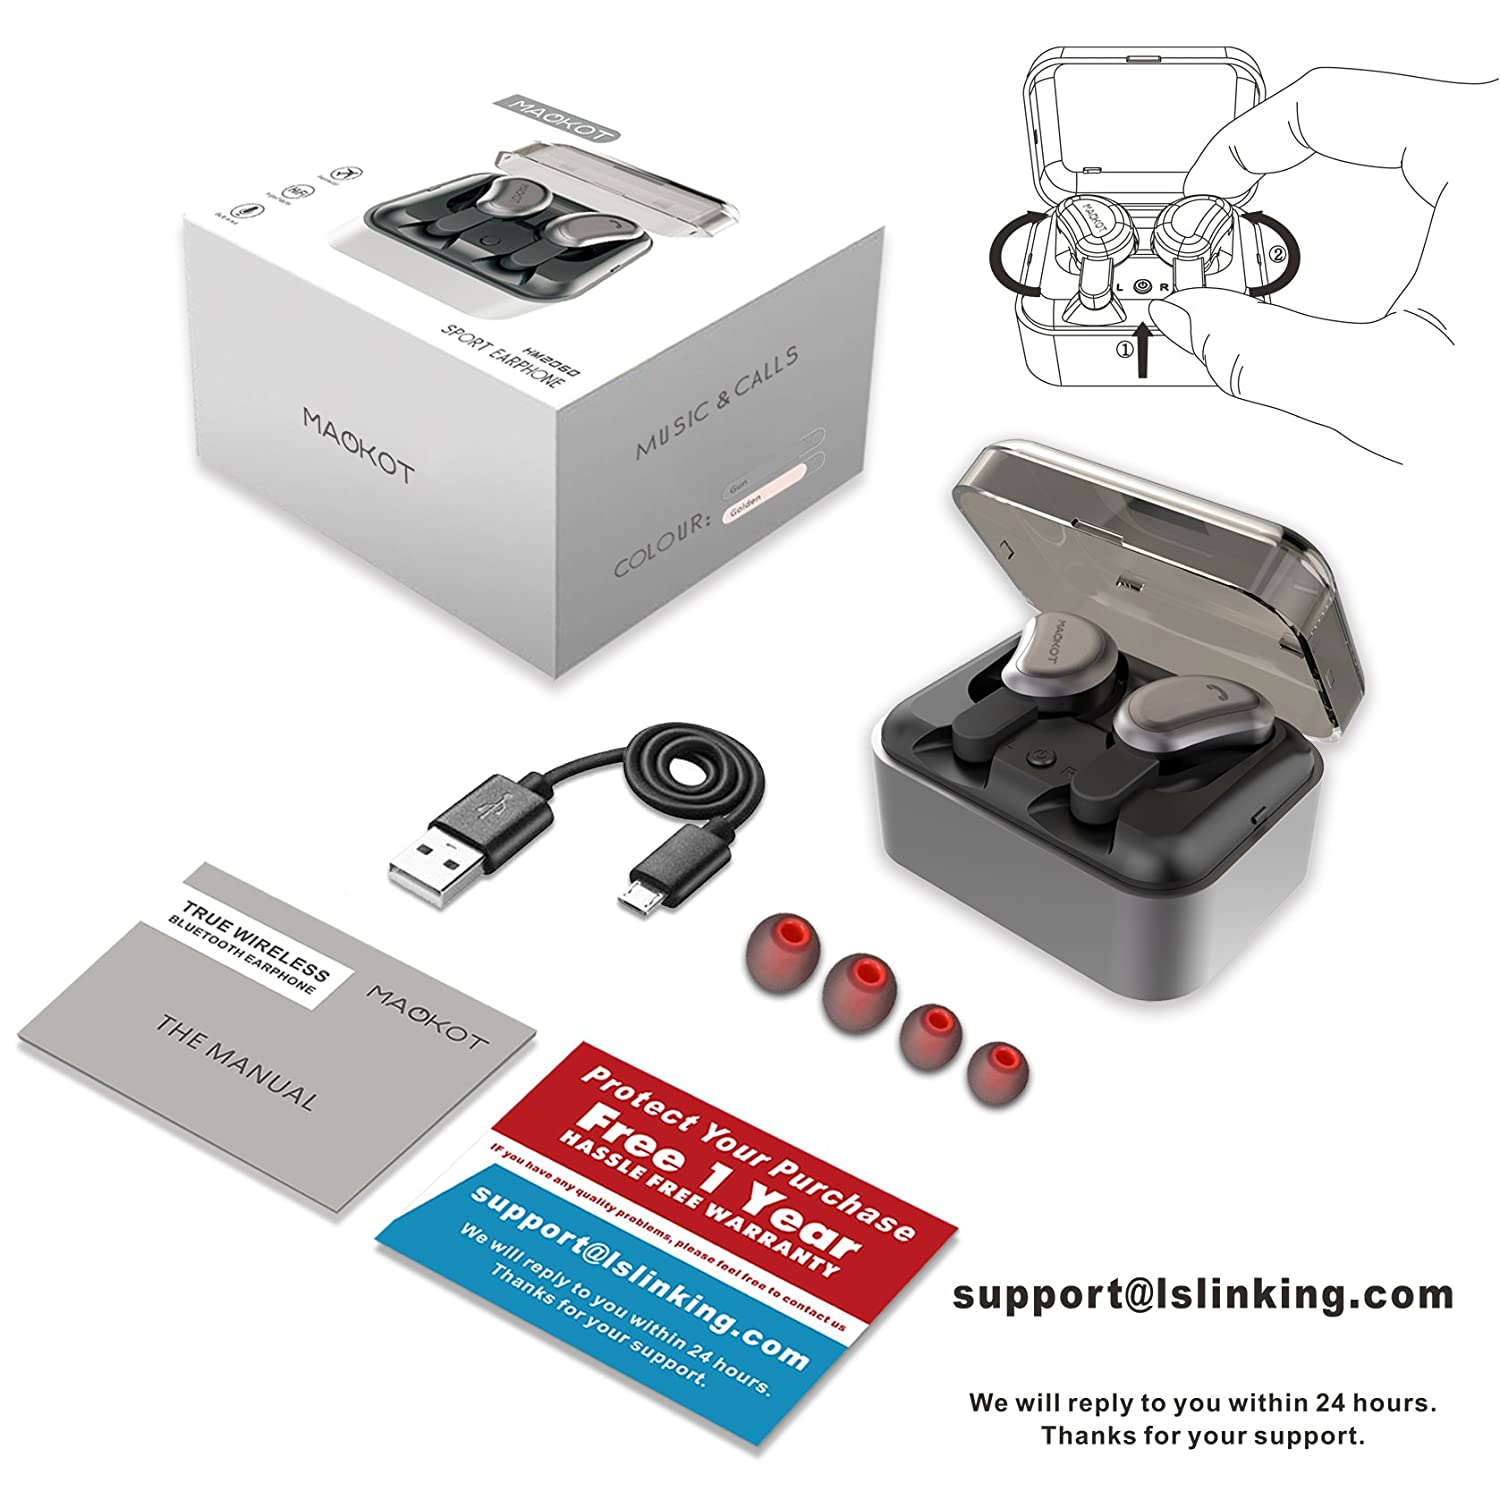 1a4a7419ea9 Some Images Of Best MAOKOT true Wireless Bluetooth Earbuds Under 100